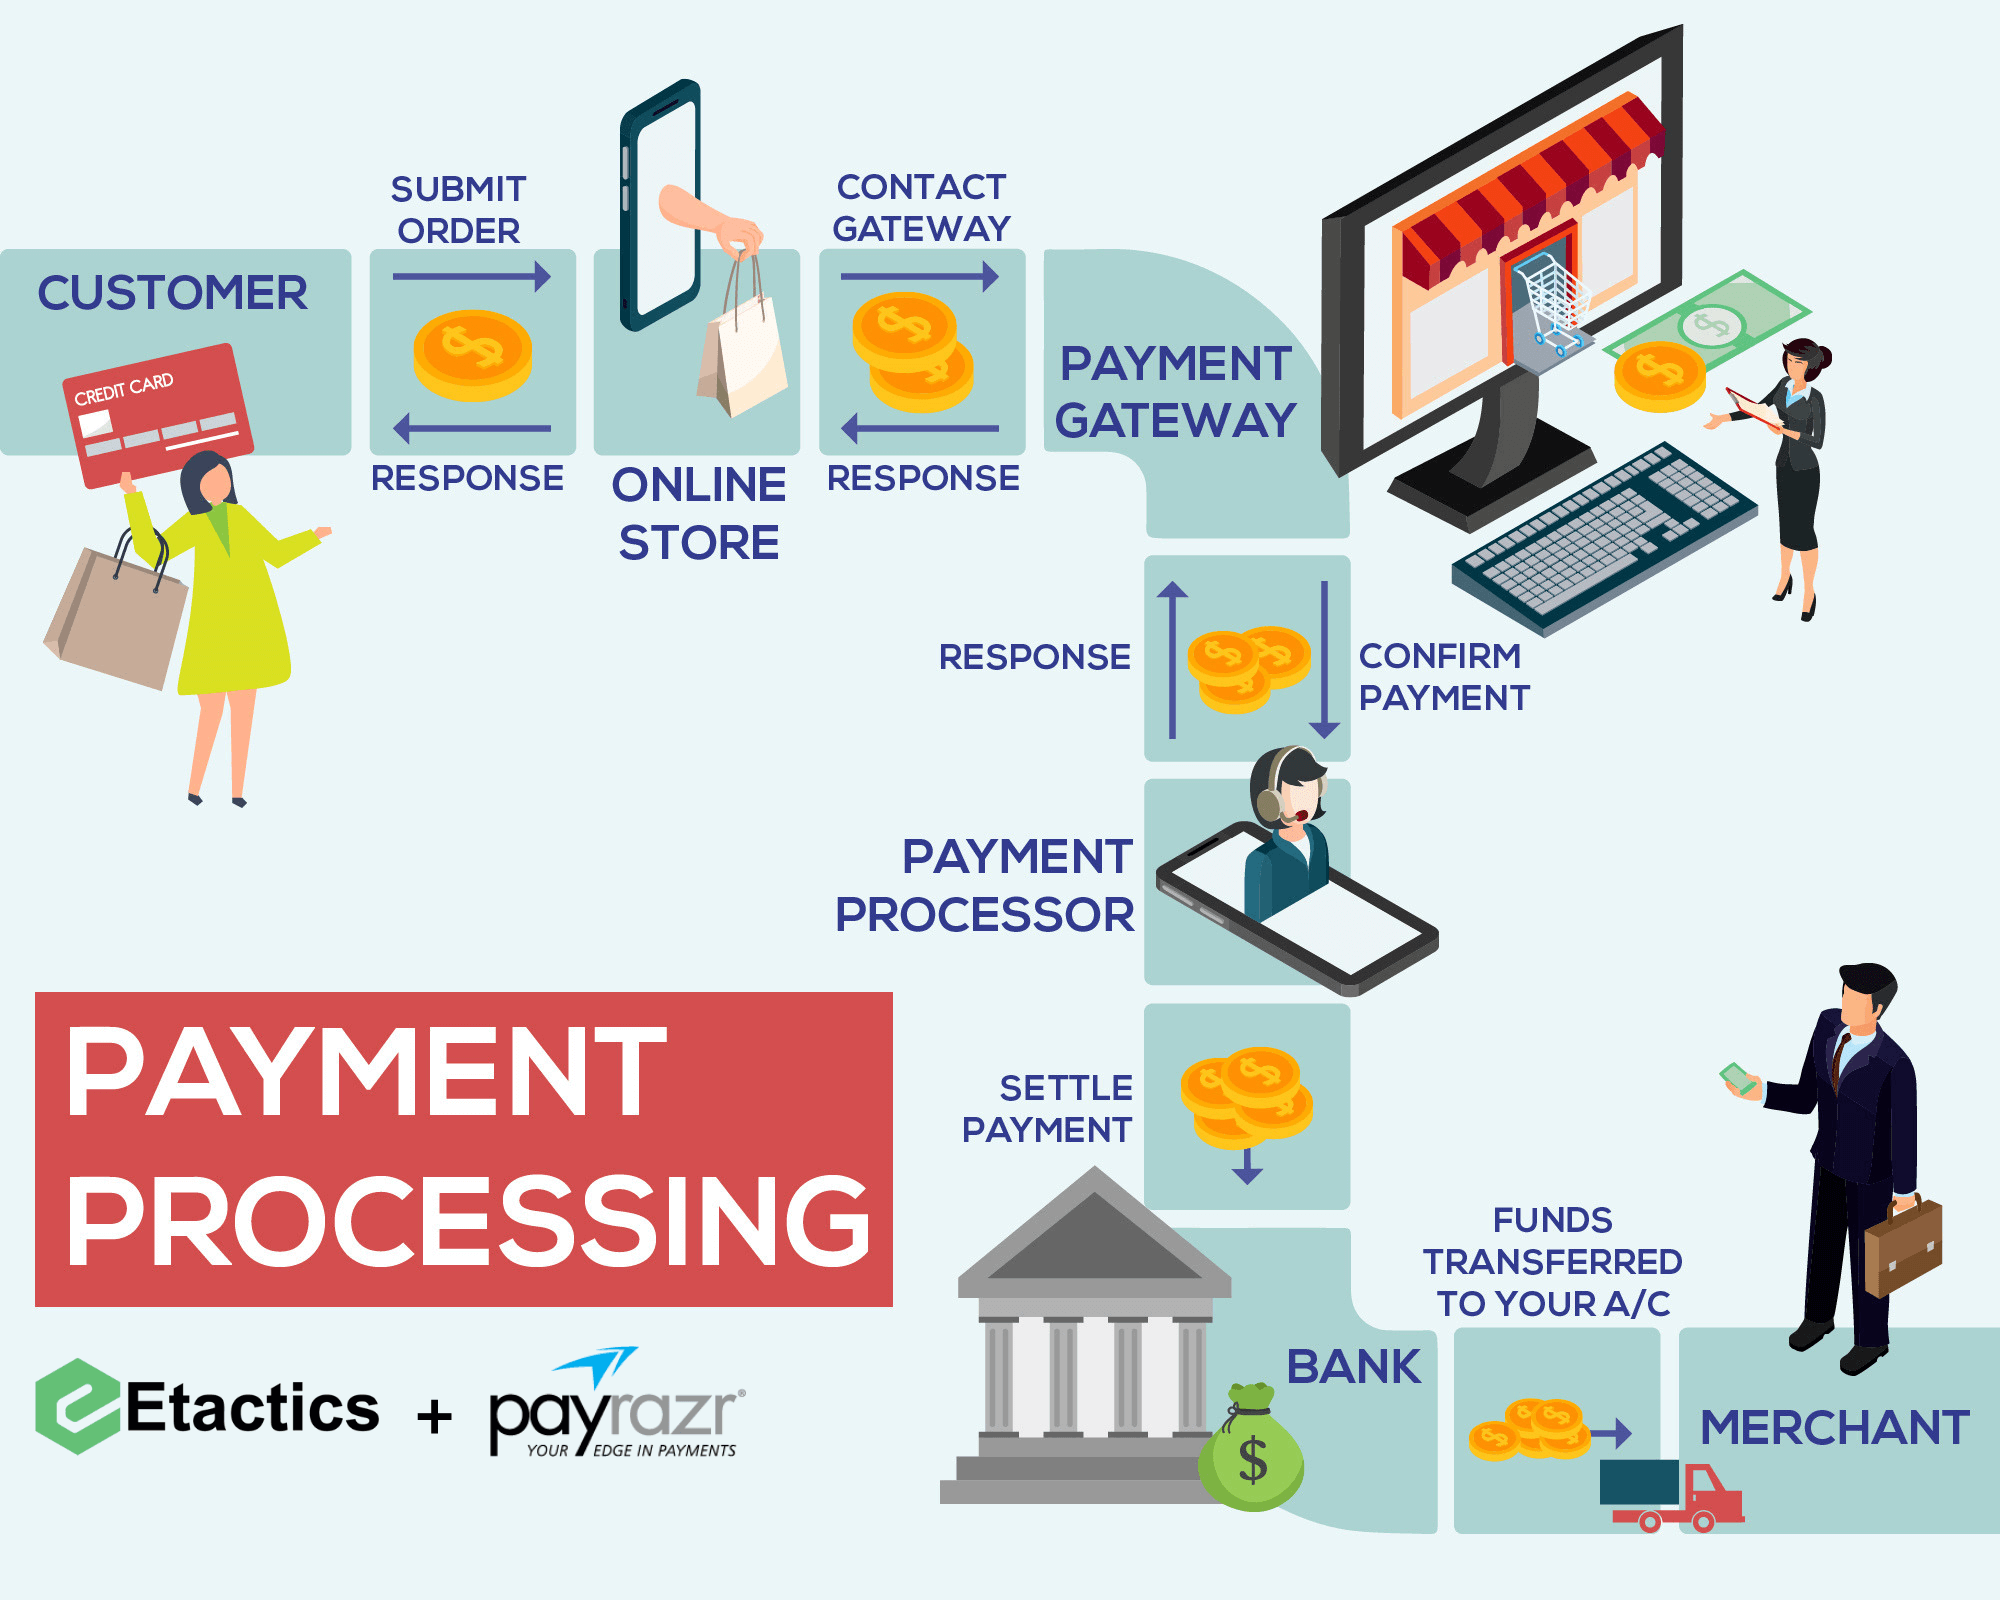 Payment processing starts with the customer, then moves to the payment gateway which communicates with the bank to transfer funds to the vendor.